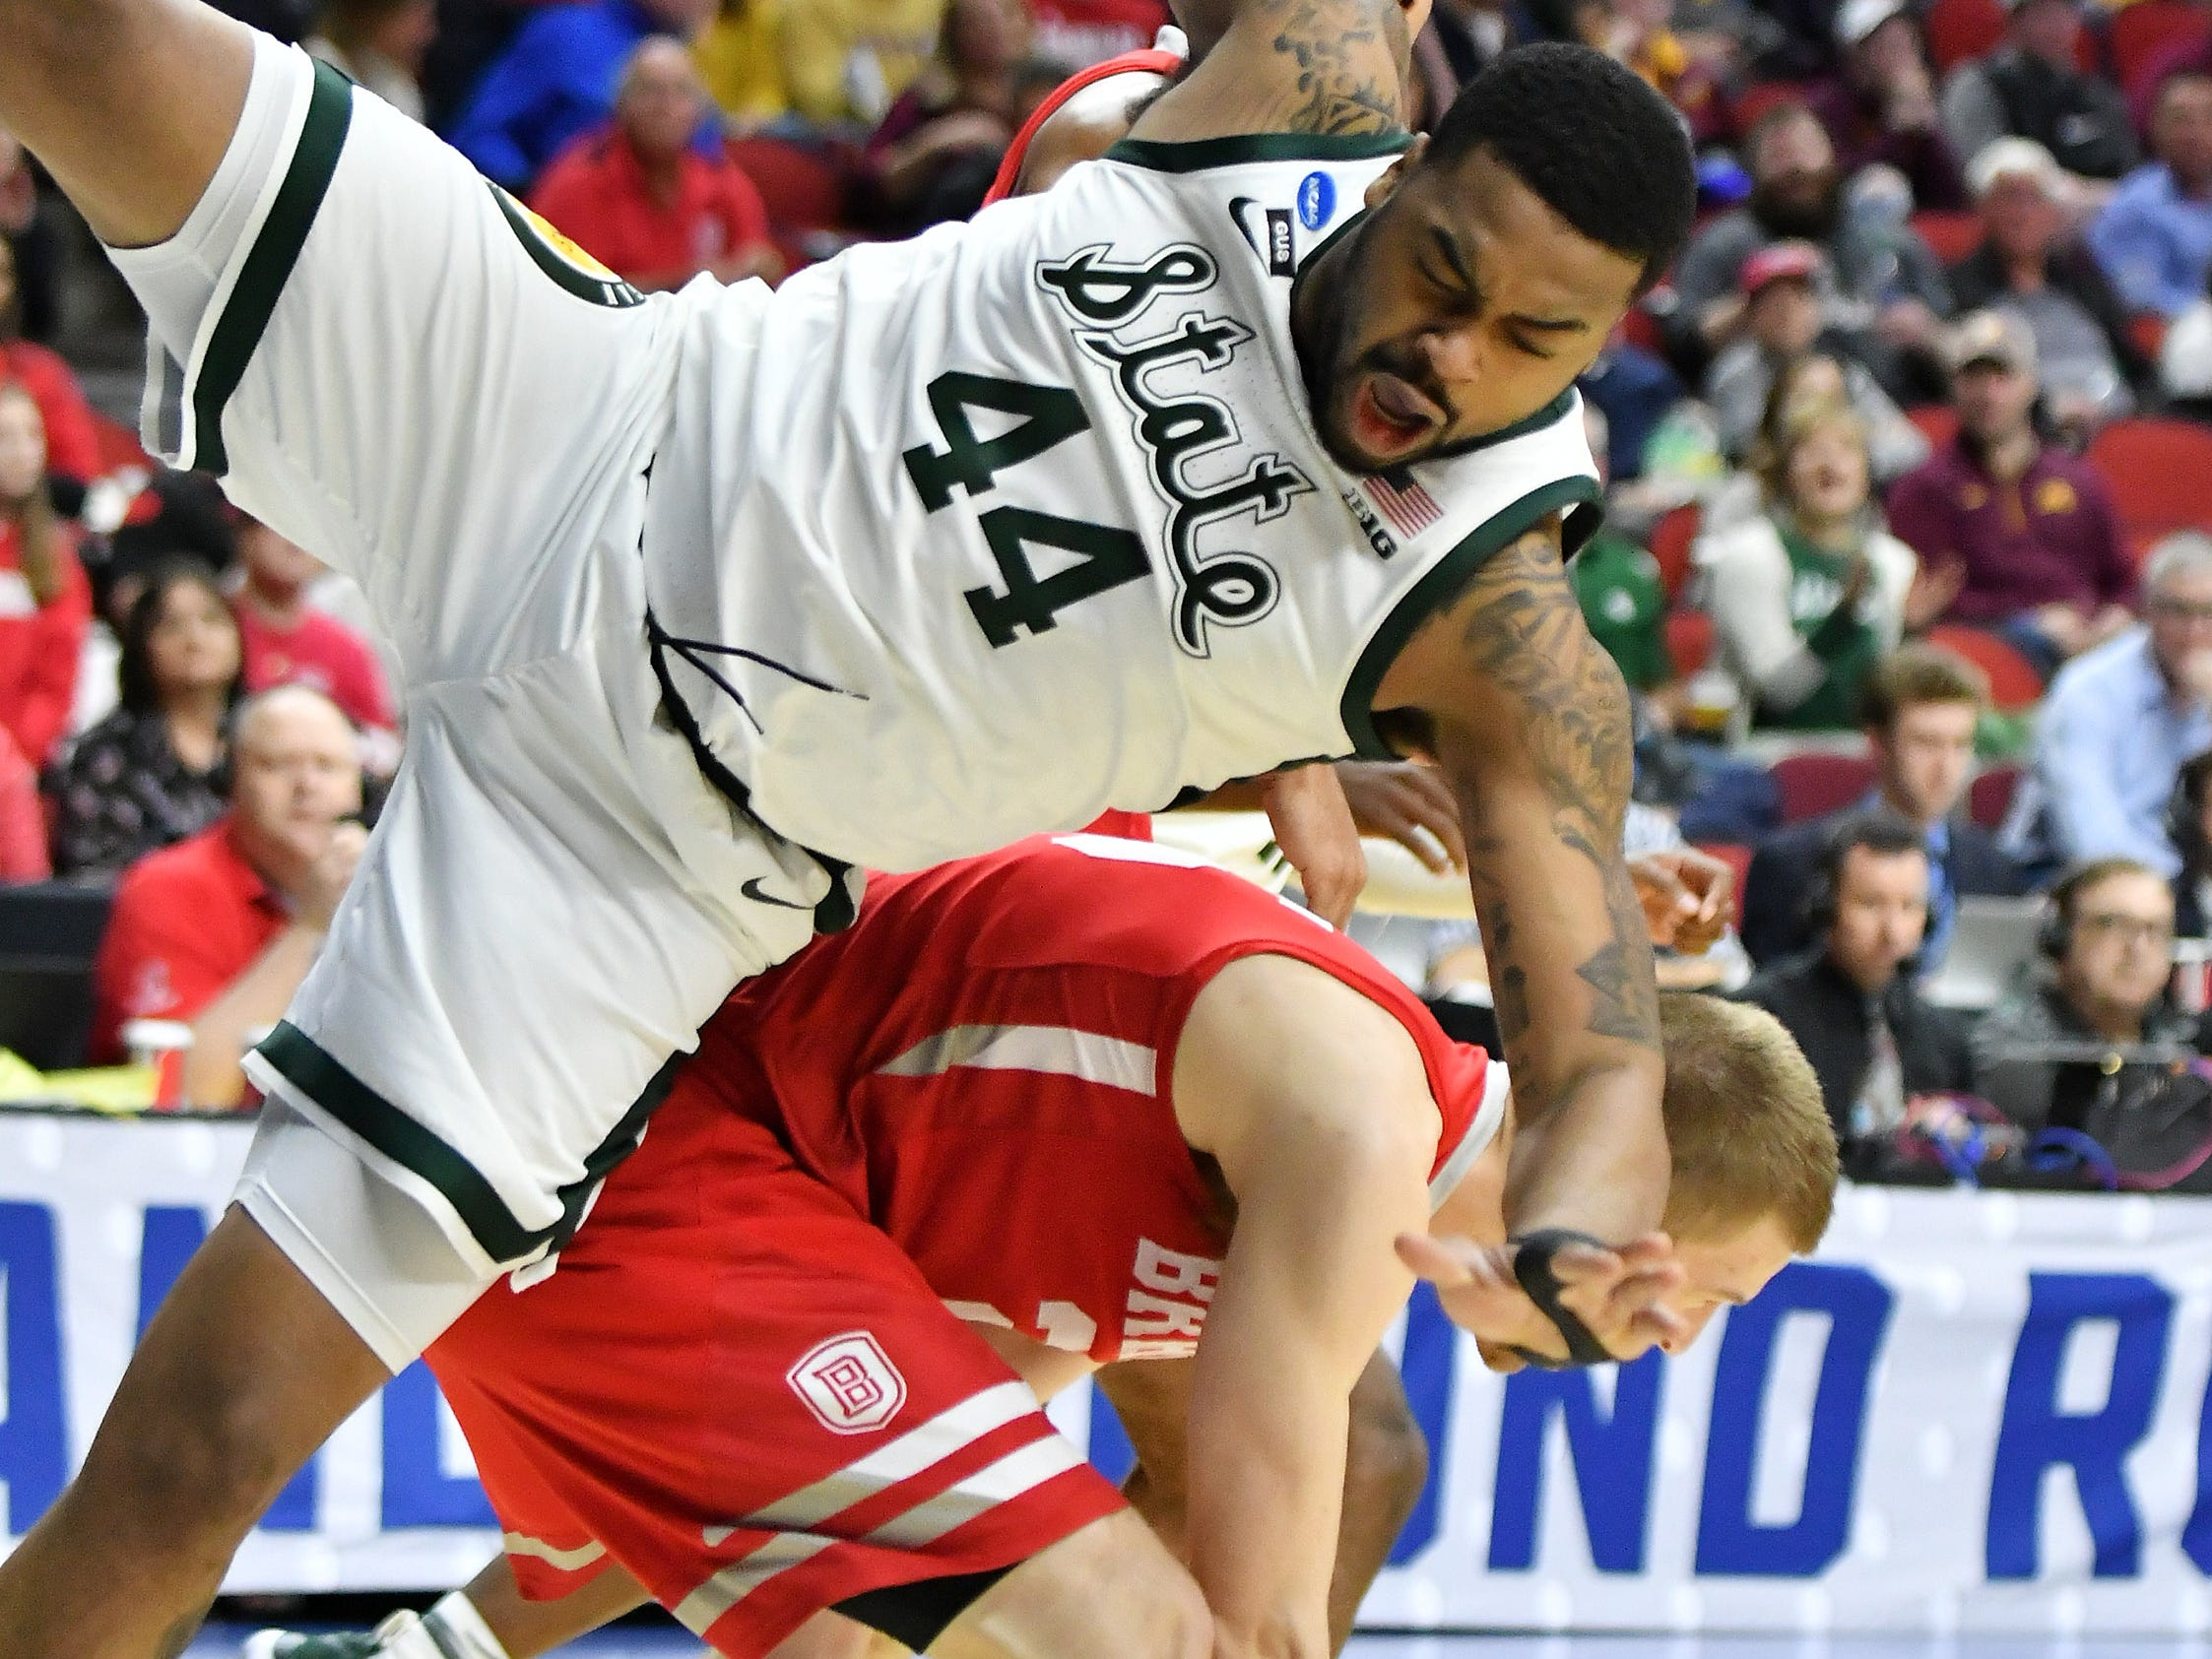 Michigan State forward Nick Ward (44) fall to the hardwood after tangling with Bradley guard Nate Kennell in the first half Thursday, March 21, 2019, at Wells Fargo Arena in Des Moines, Iowa.